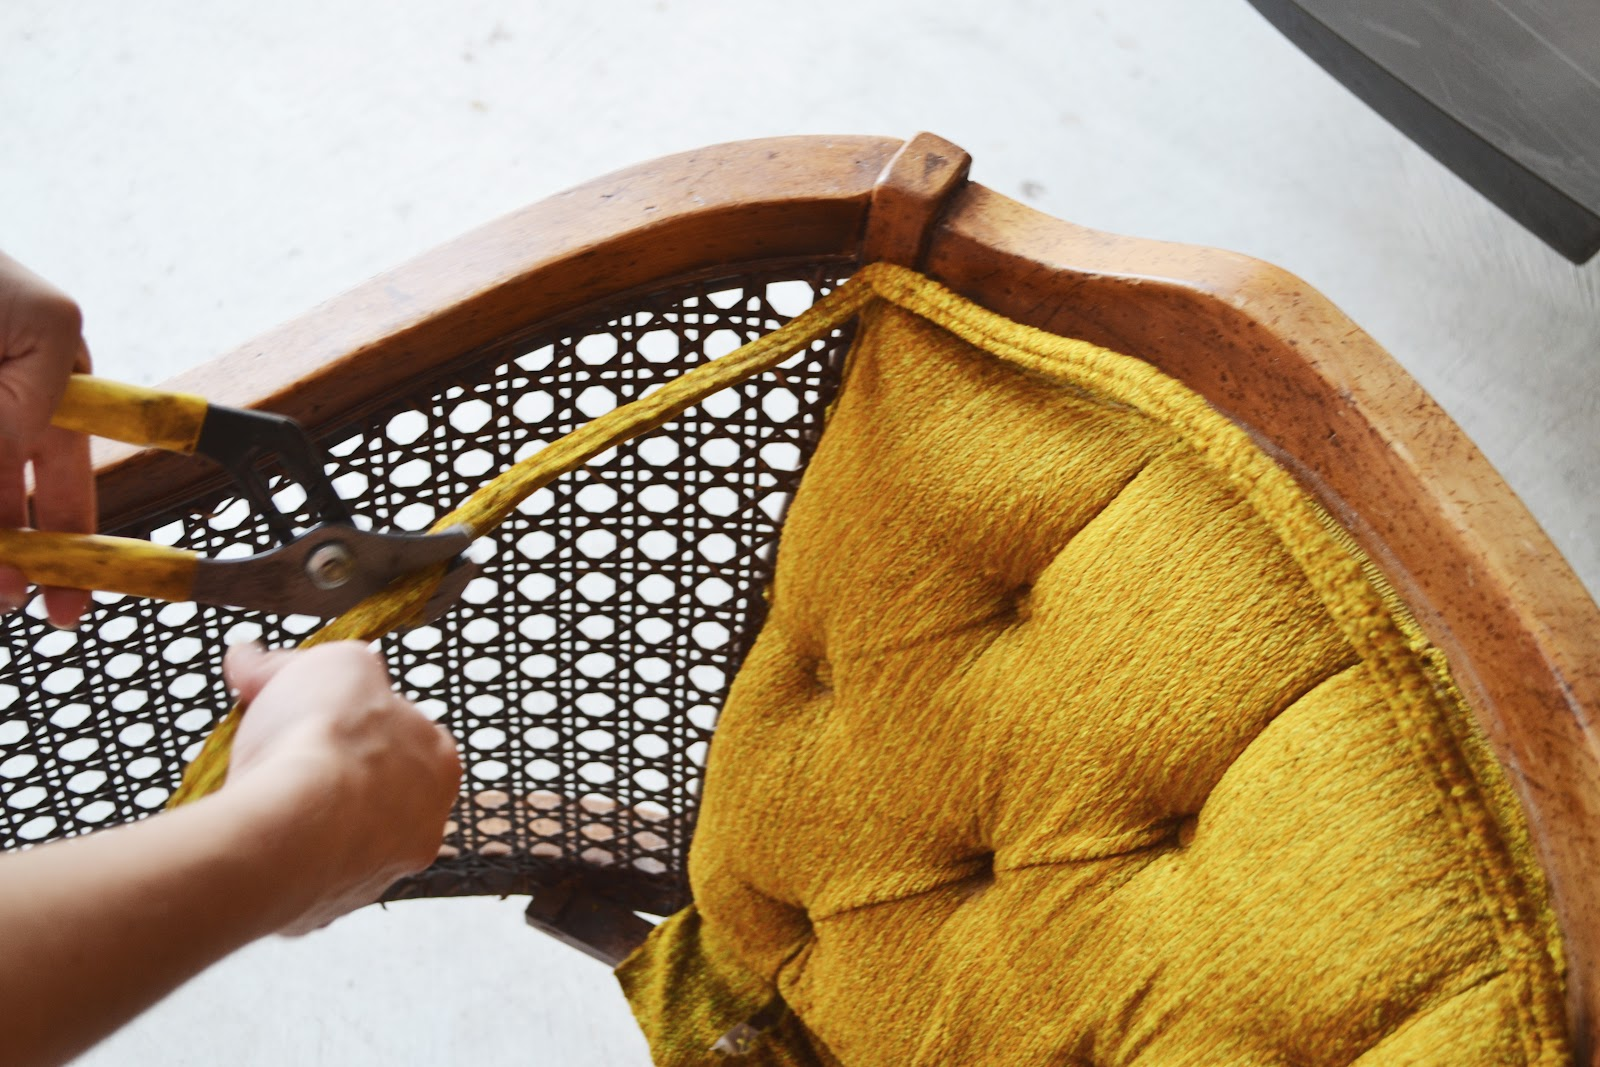 How To Replace Cane Back Chair With Fabric R Underwater Sarah M Dorsey Designs Chartreuse And White Caning